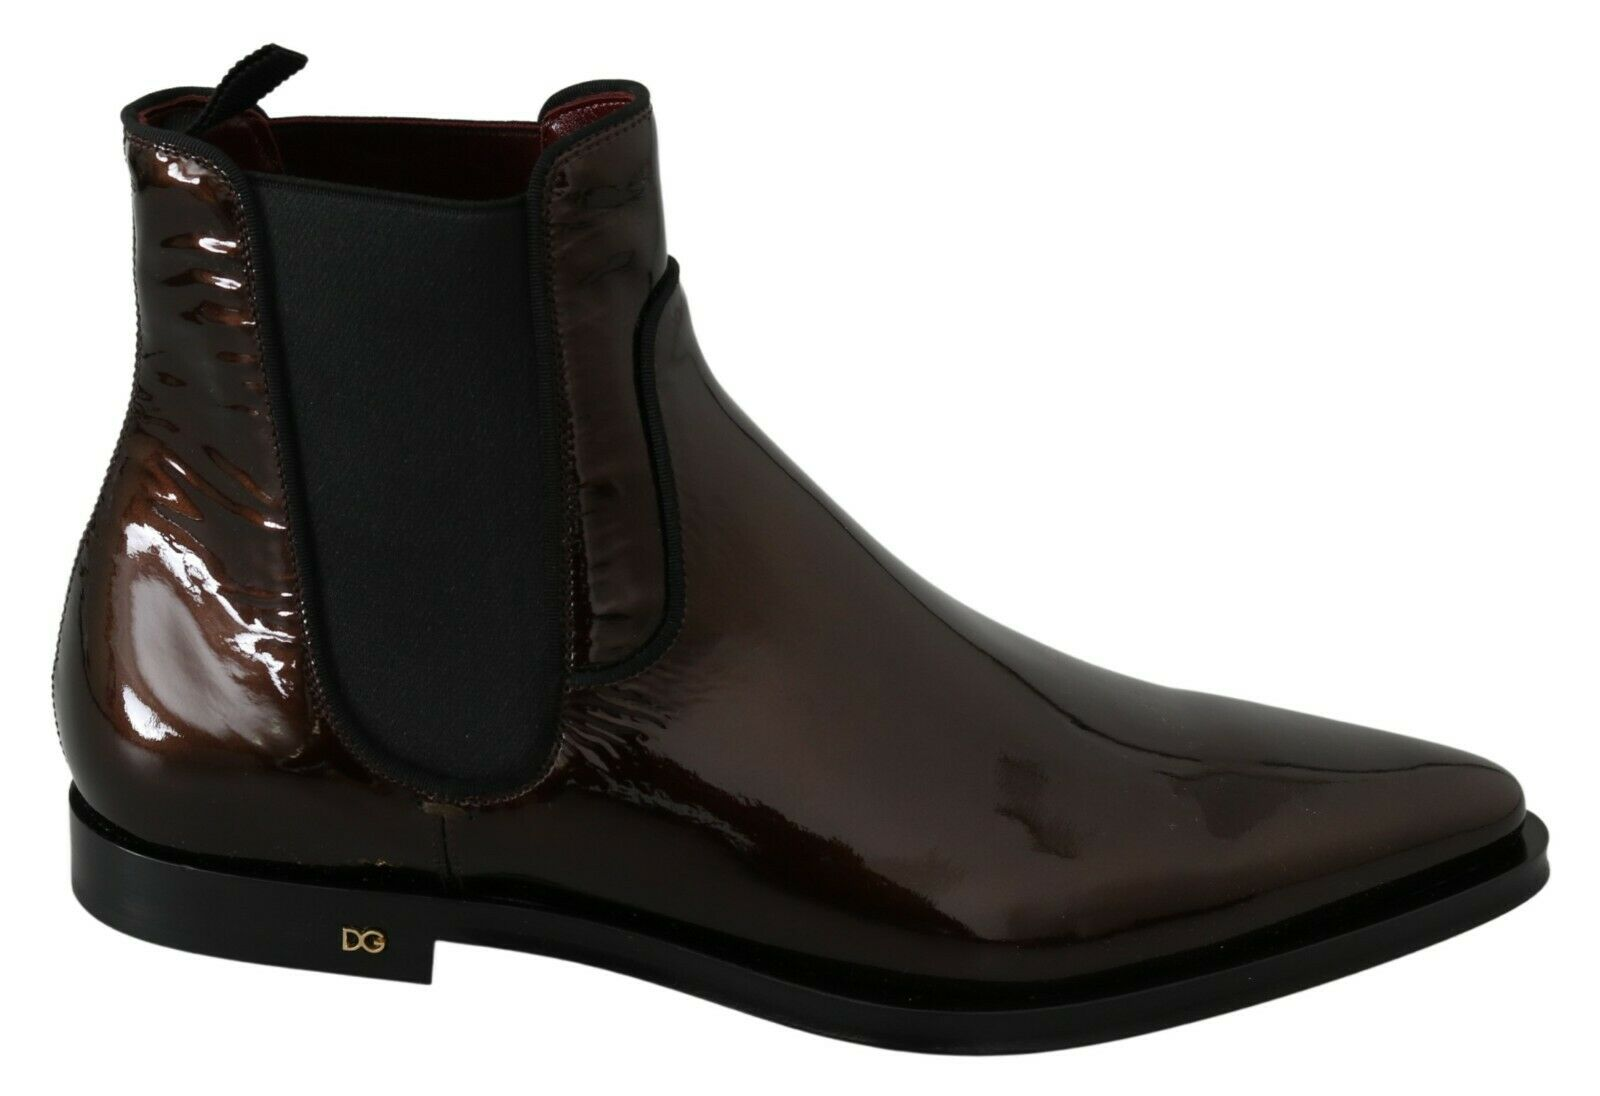 DOLCE & GABBANA Shoes Brown Patent Leather Boots Stretch EU44 / US11